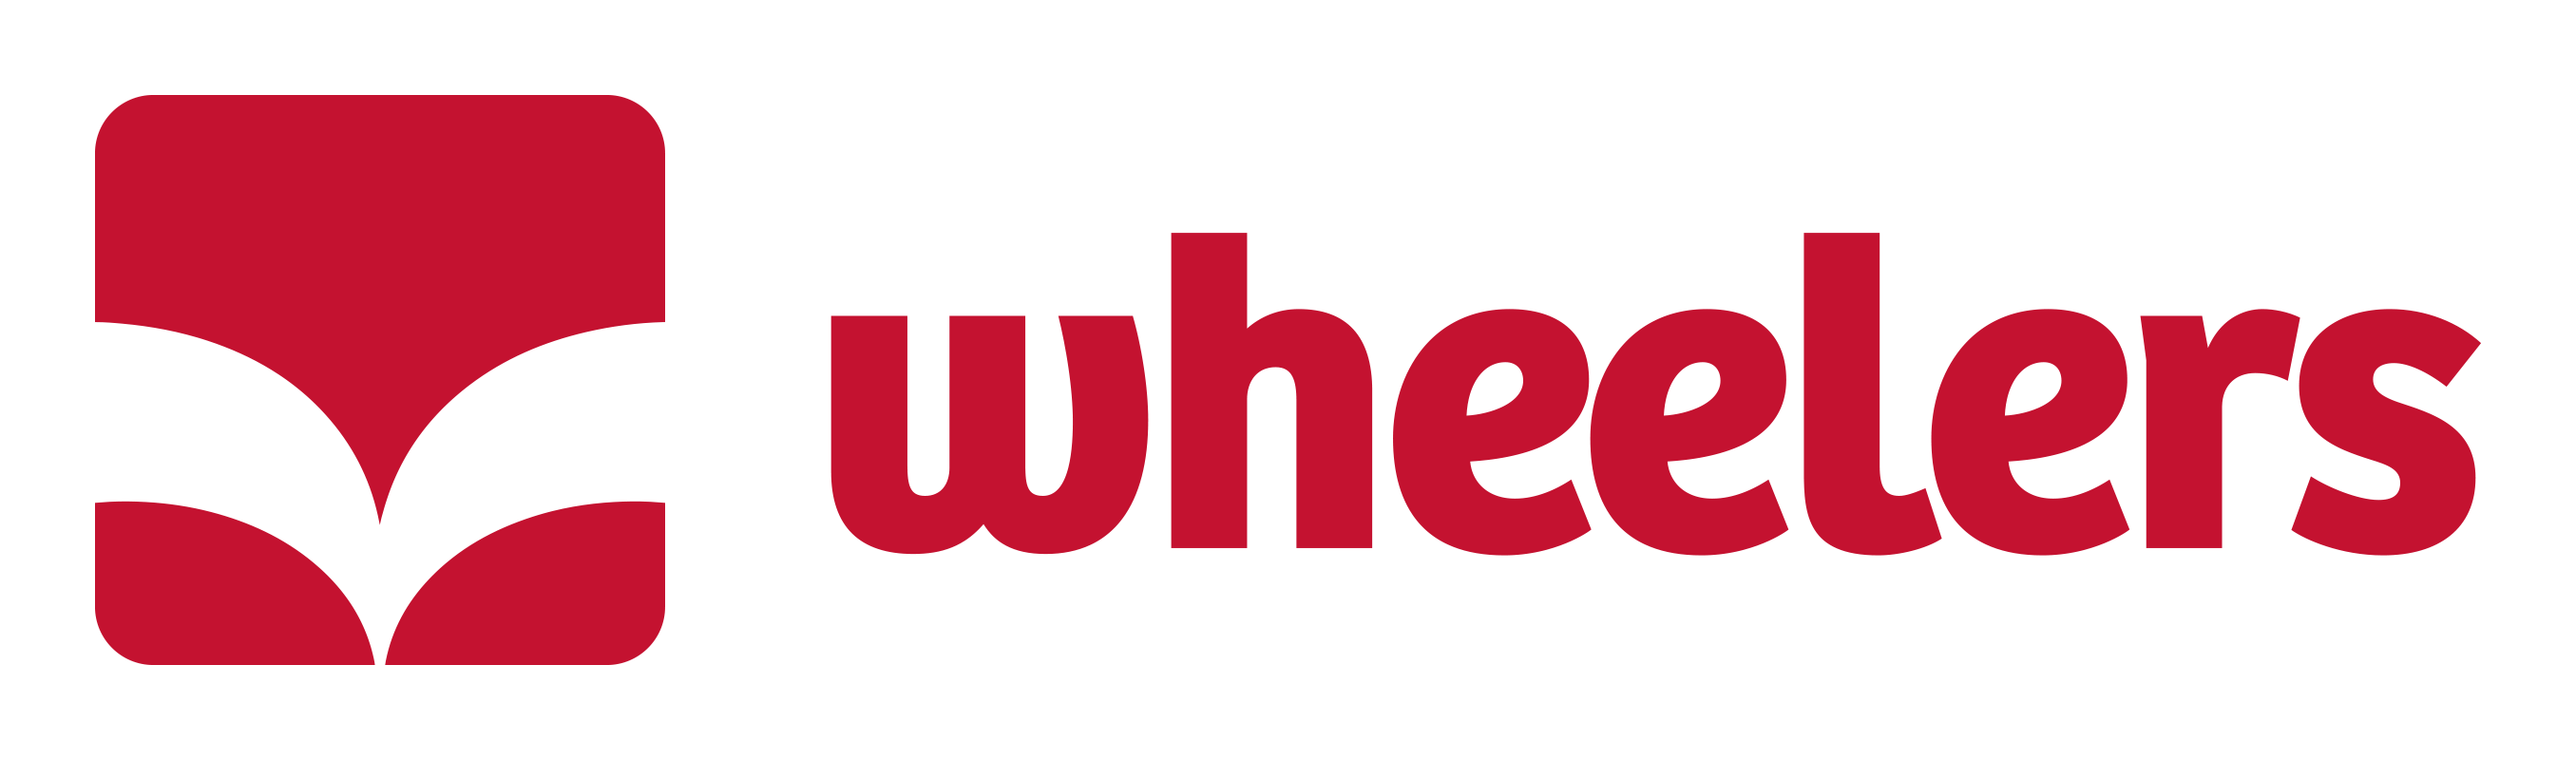 wheelers-logo